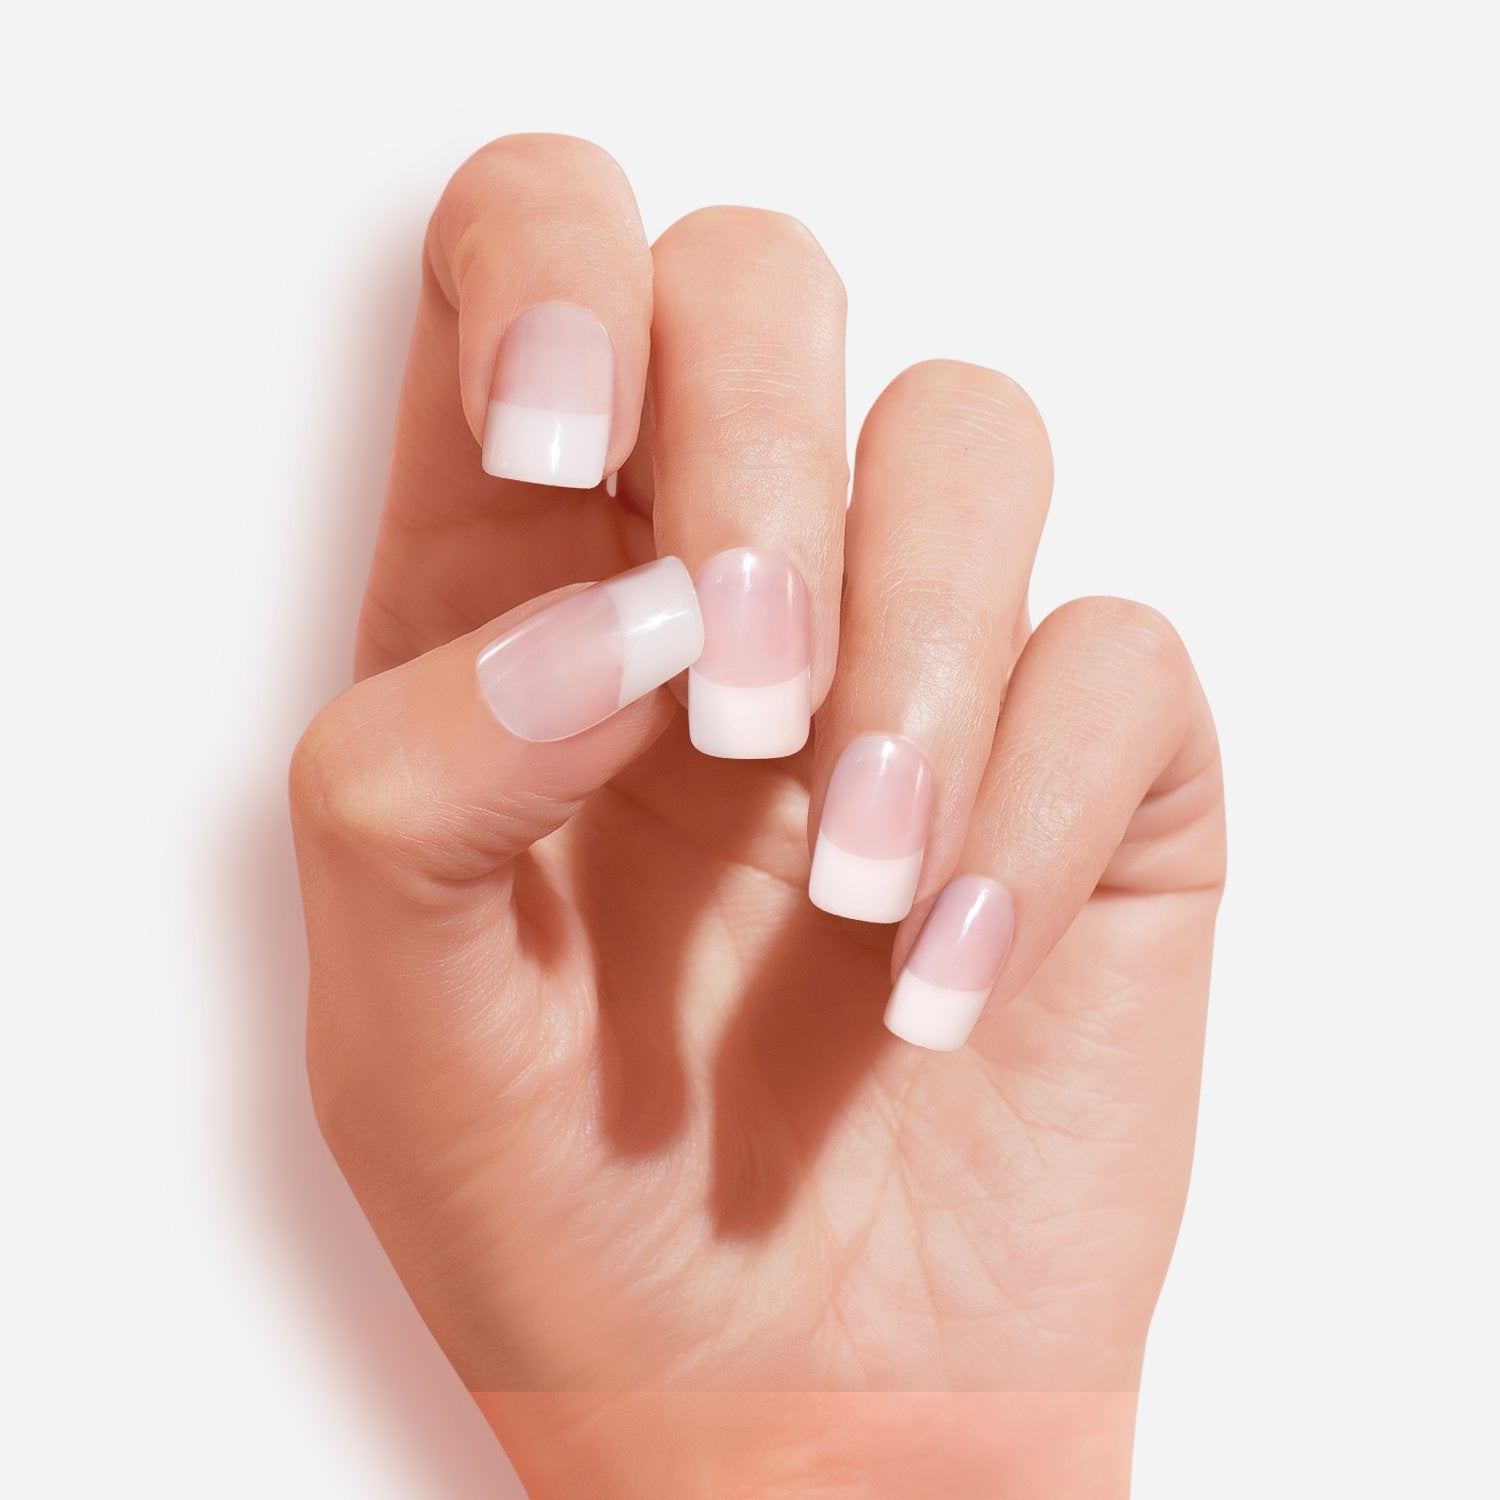 Nail Care, Manicure & Pedicure Health & Beauty Rapture Fake Nails Kit Stiletto Pointed French White Nude 16 Nails